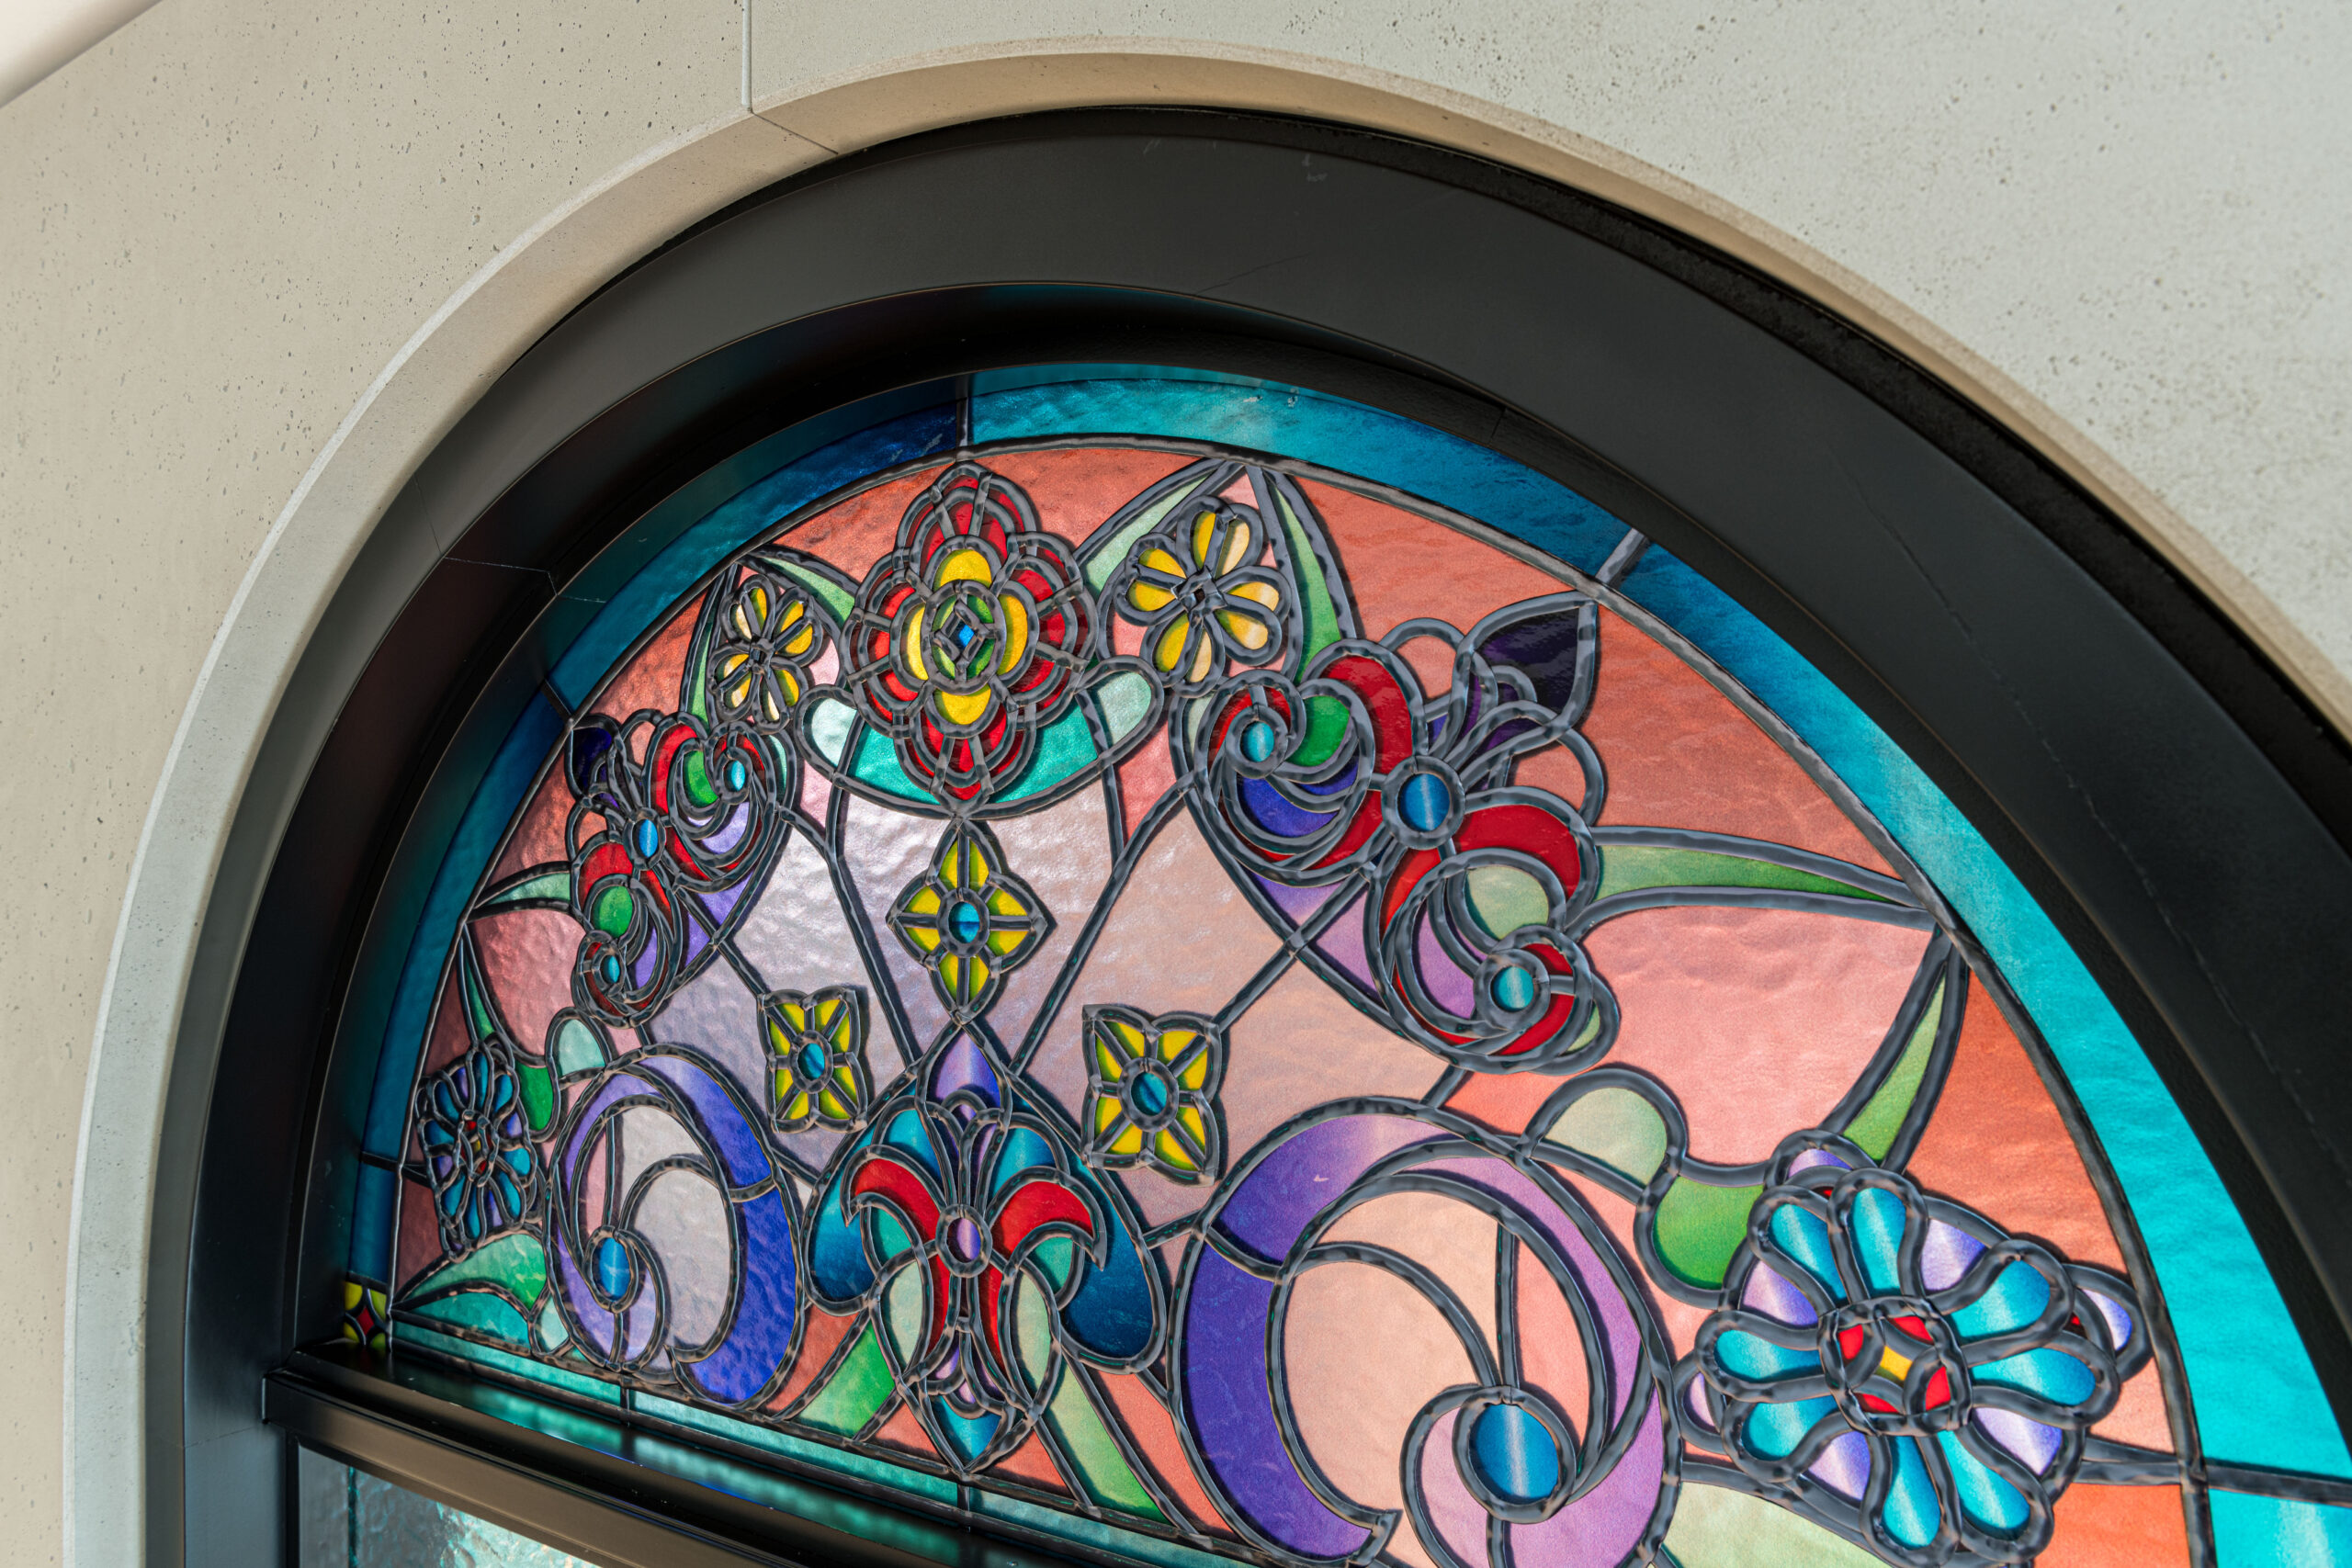 Stained Glass for Recent London Project